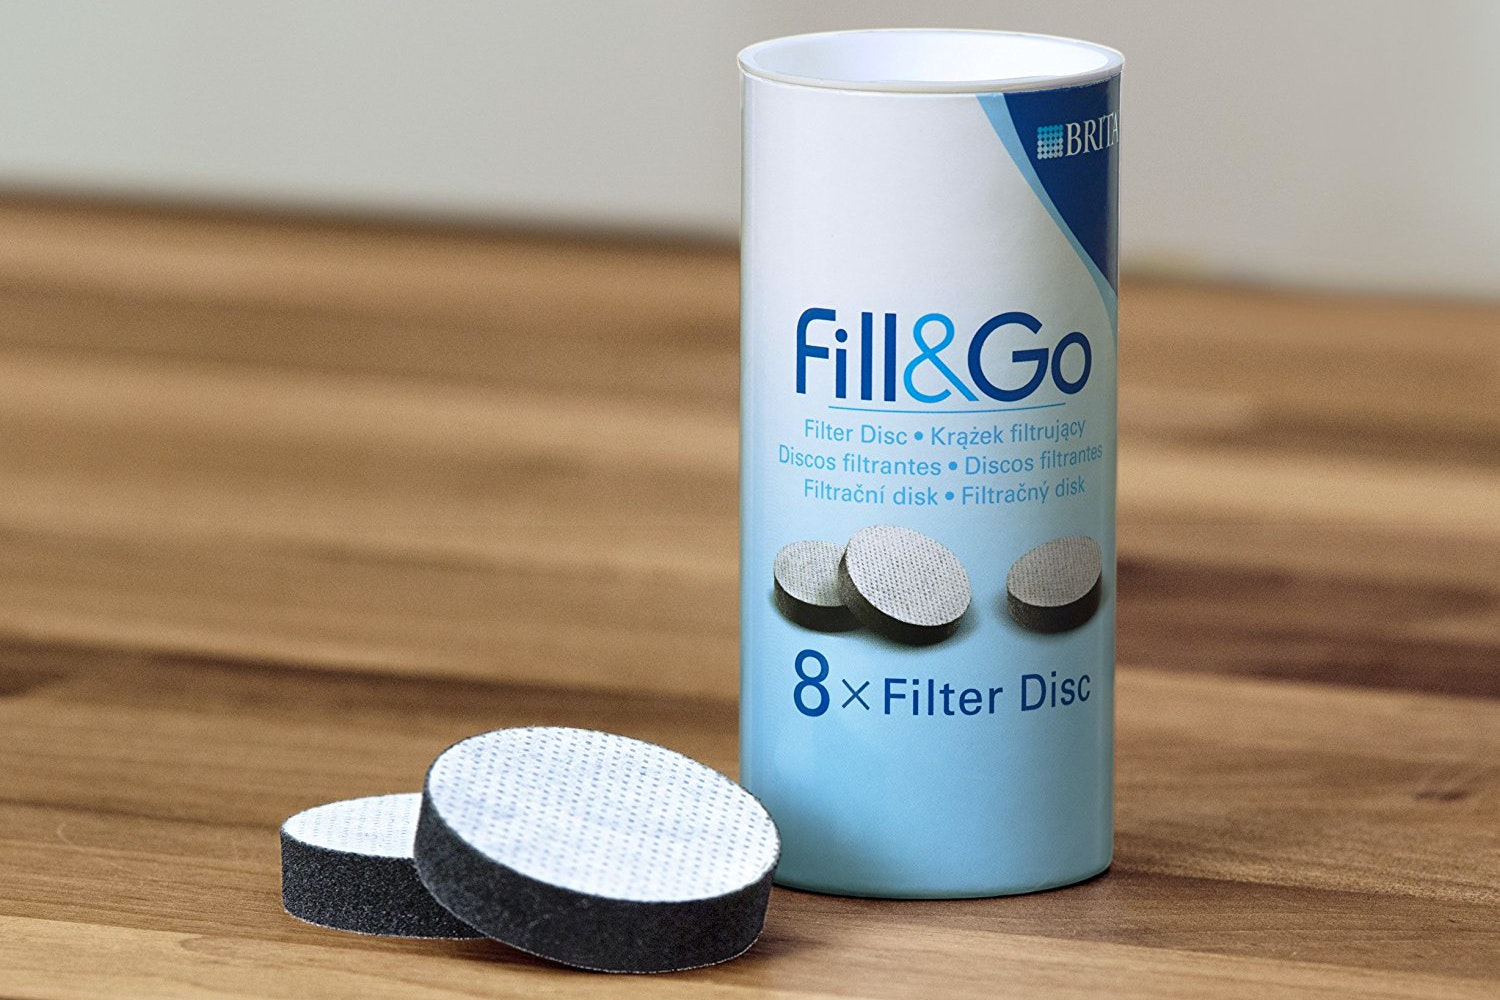 Brita Fill&Go Replacement Discs | 8 Pack